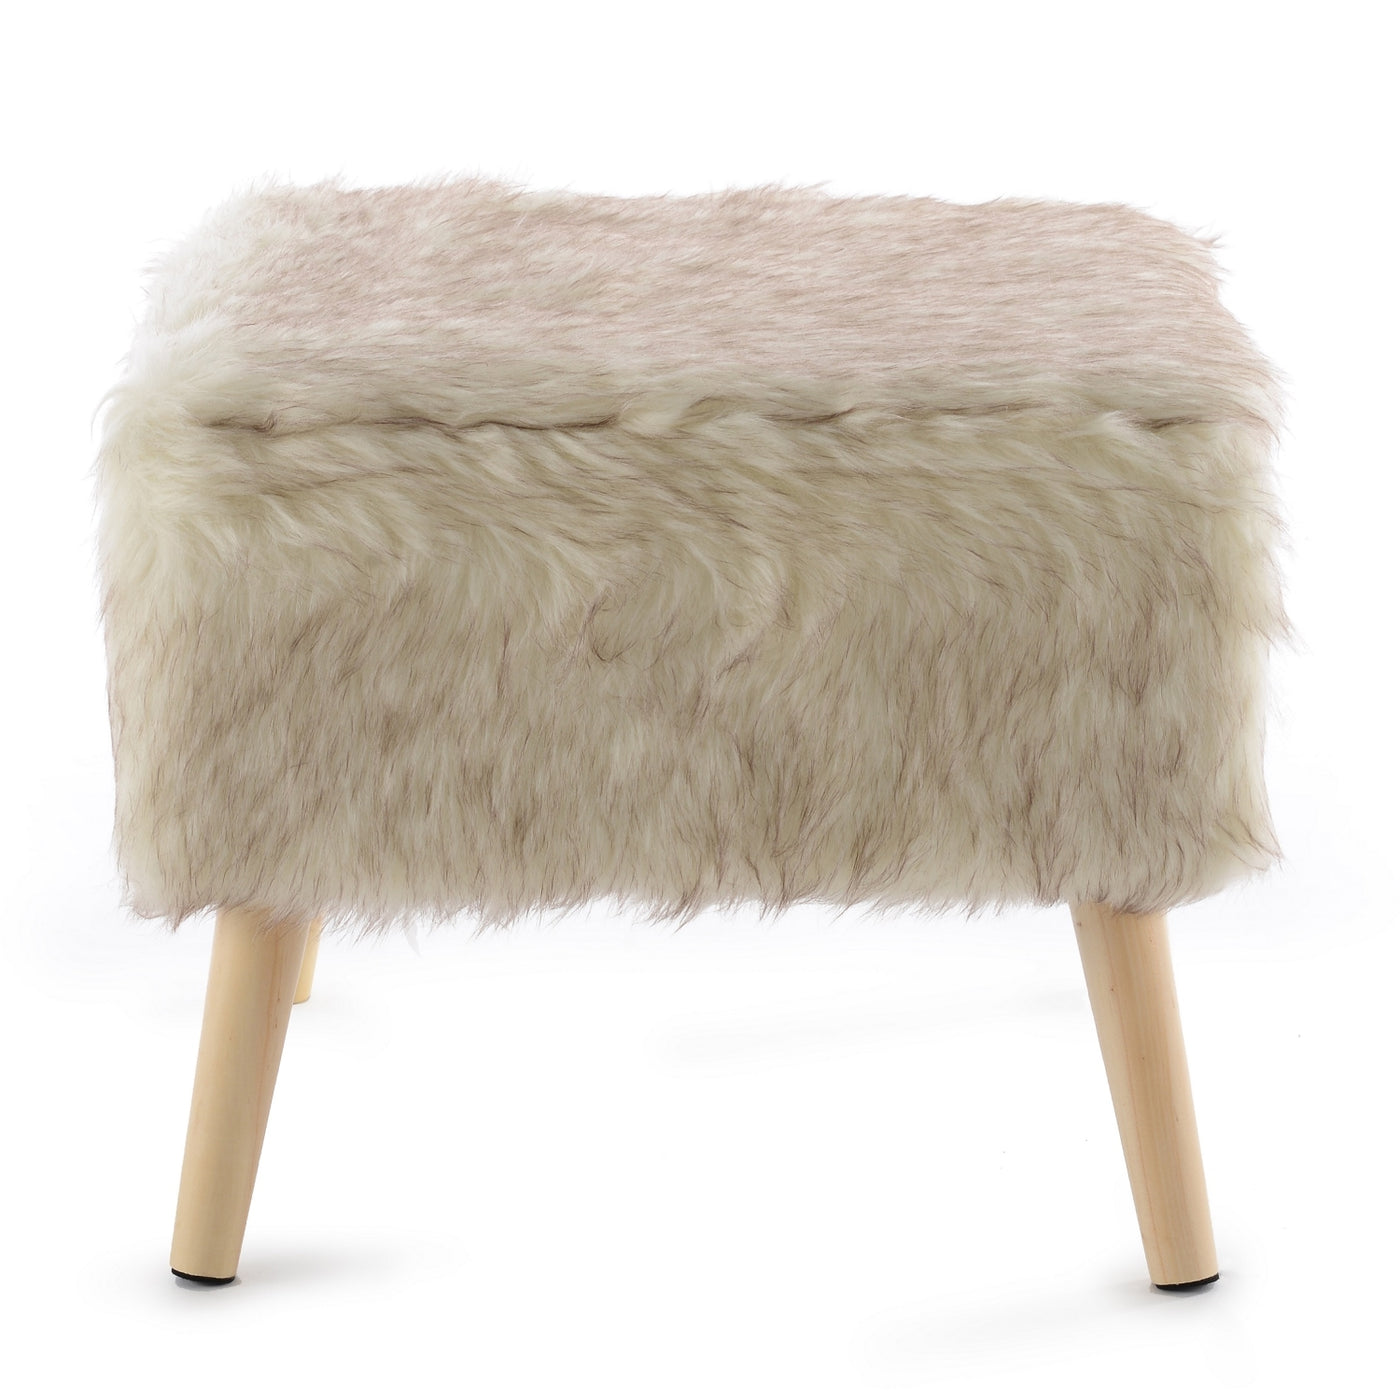 Marvelous Cheer Collection Faux Fur Wood Leg Stool Cjindustries Chair Design For Home Cjindustriesco